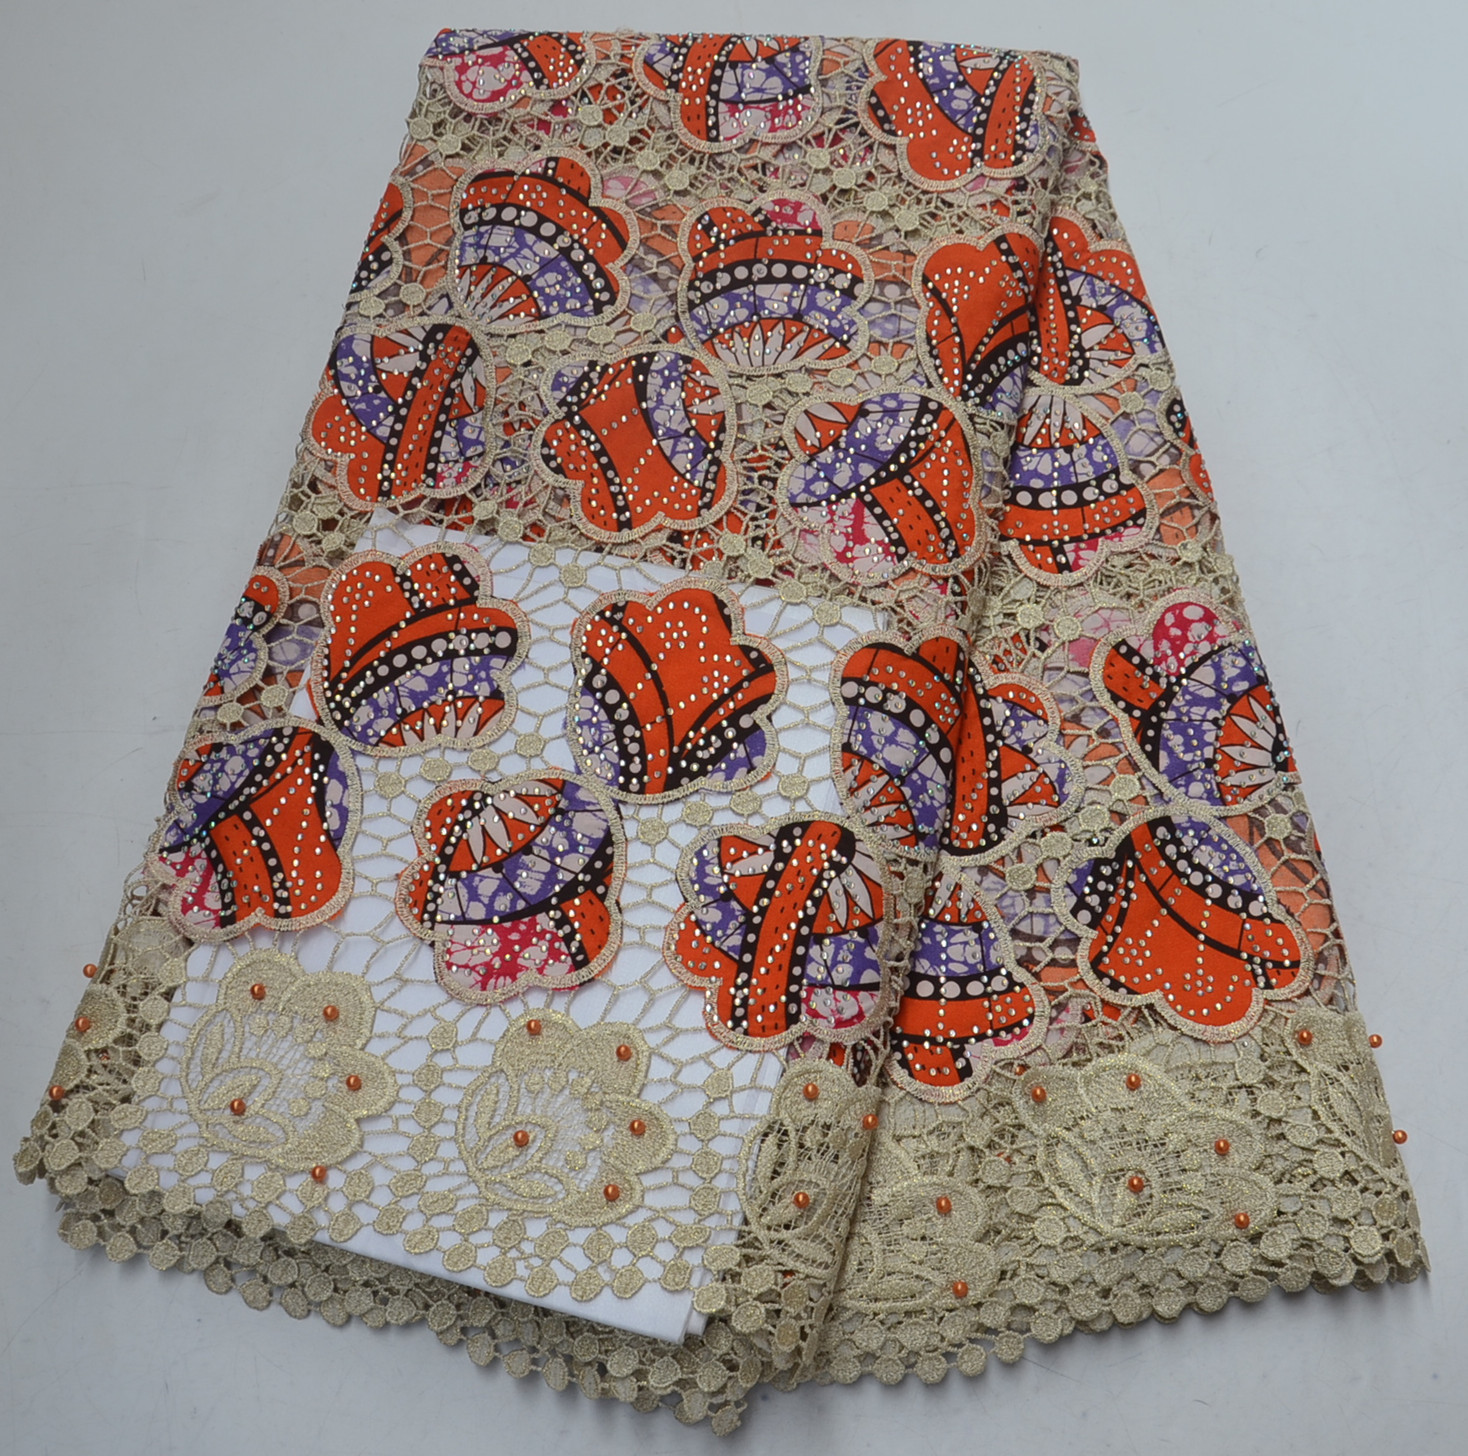 High Quality African Wax Lace Fabric Hot Sales African Wax Lace Fabric With Embroidery Cord Wax Fabric For PartyHigh Quality African Wax Lace Fabric Hot Sales African Wax Lace Fabric With Embroidery Cord Wax Fabric For Party